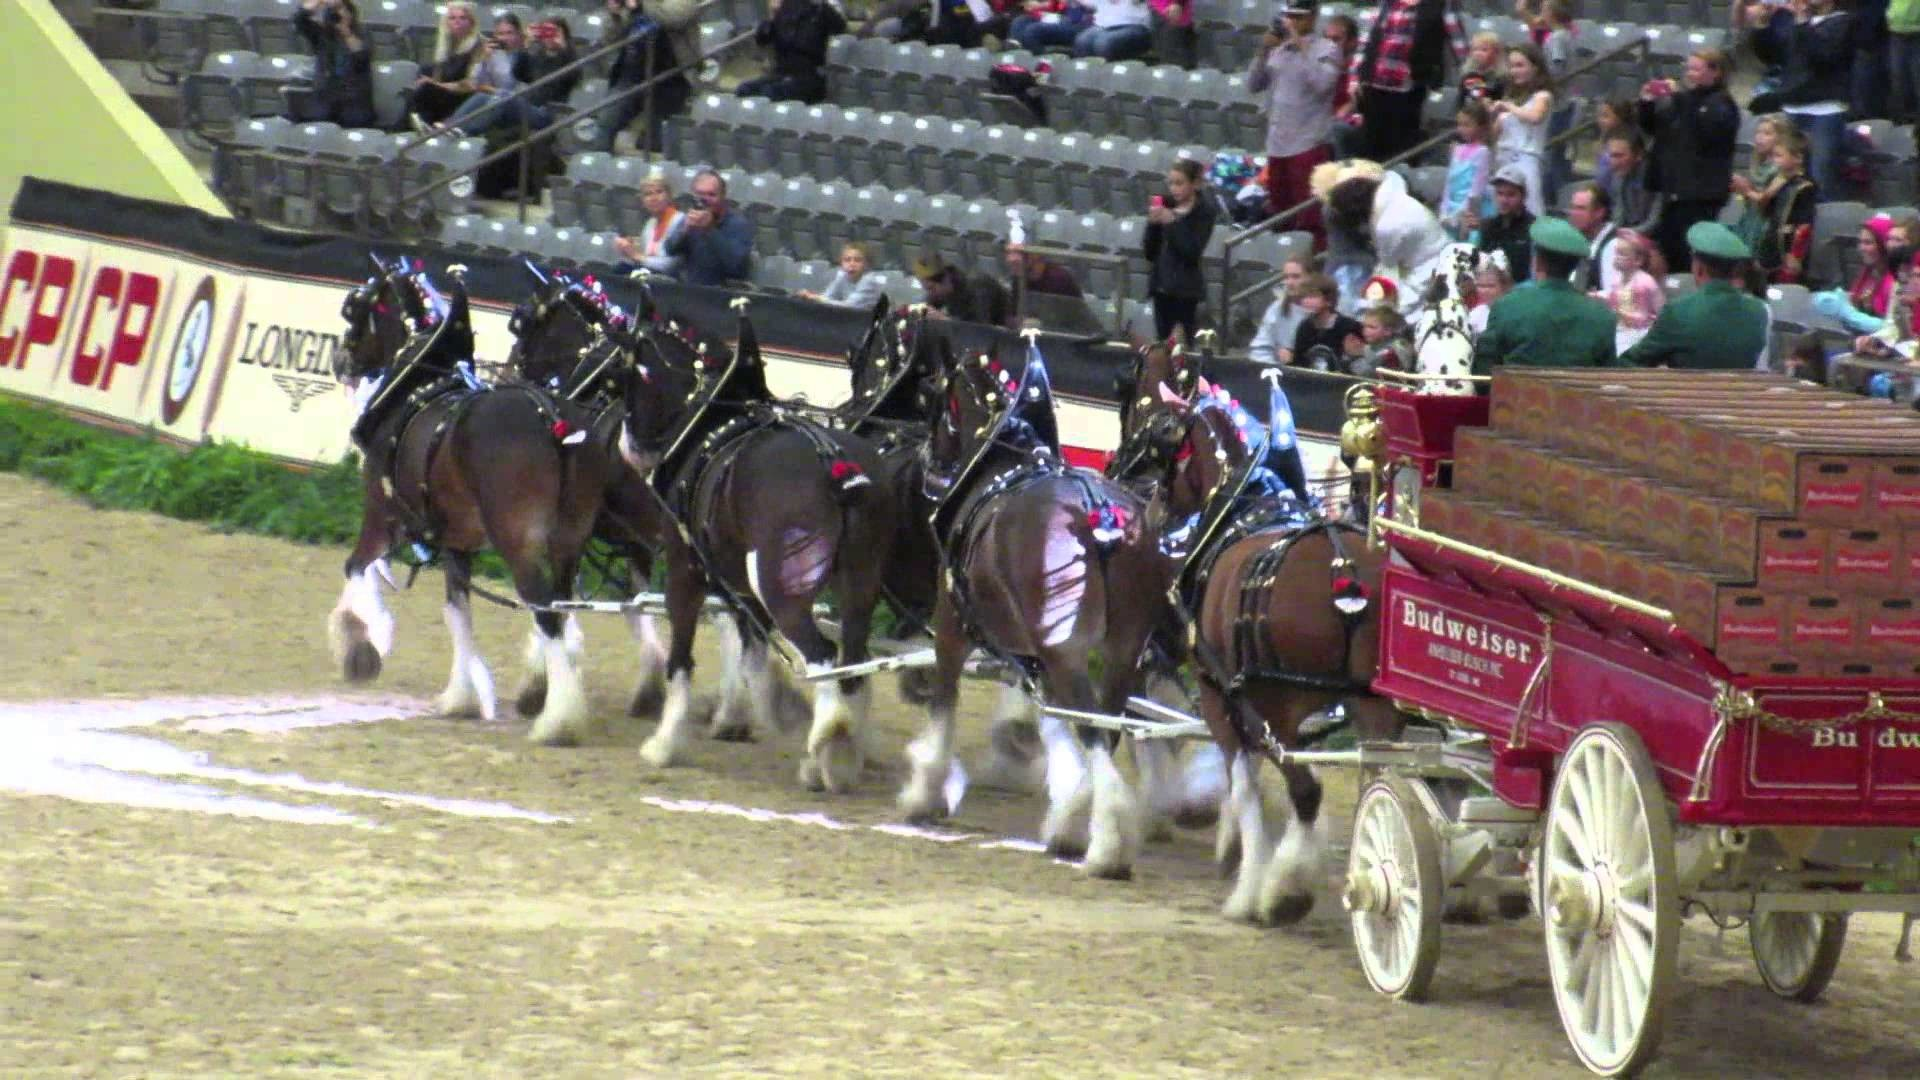 Res: 1920x1080, Budweiser Clydesdale at the CP National Horse Show